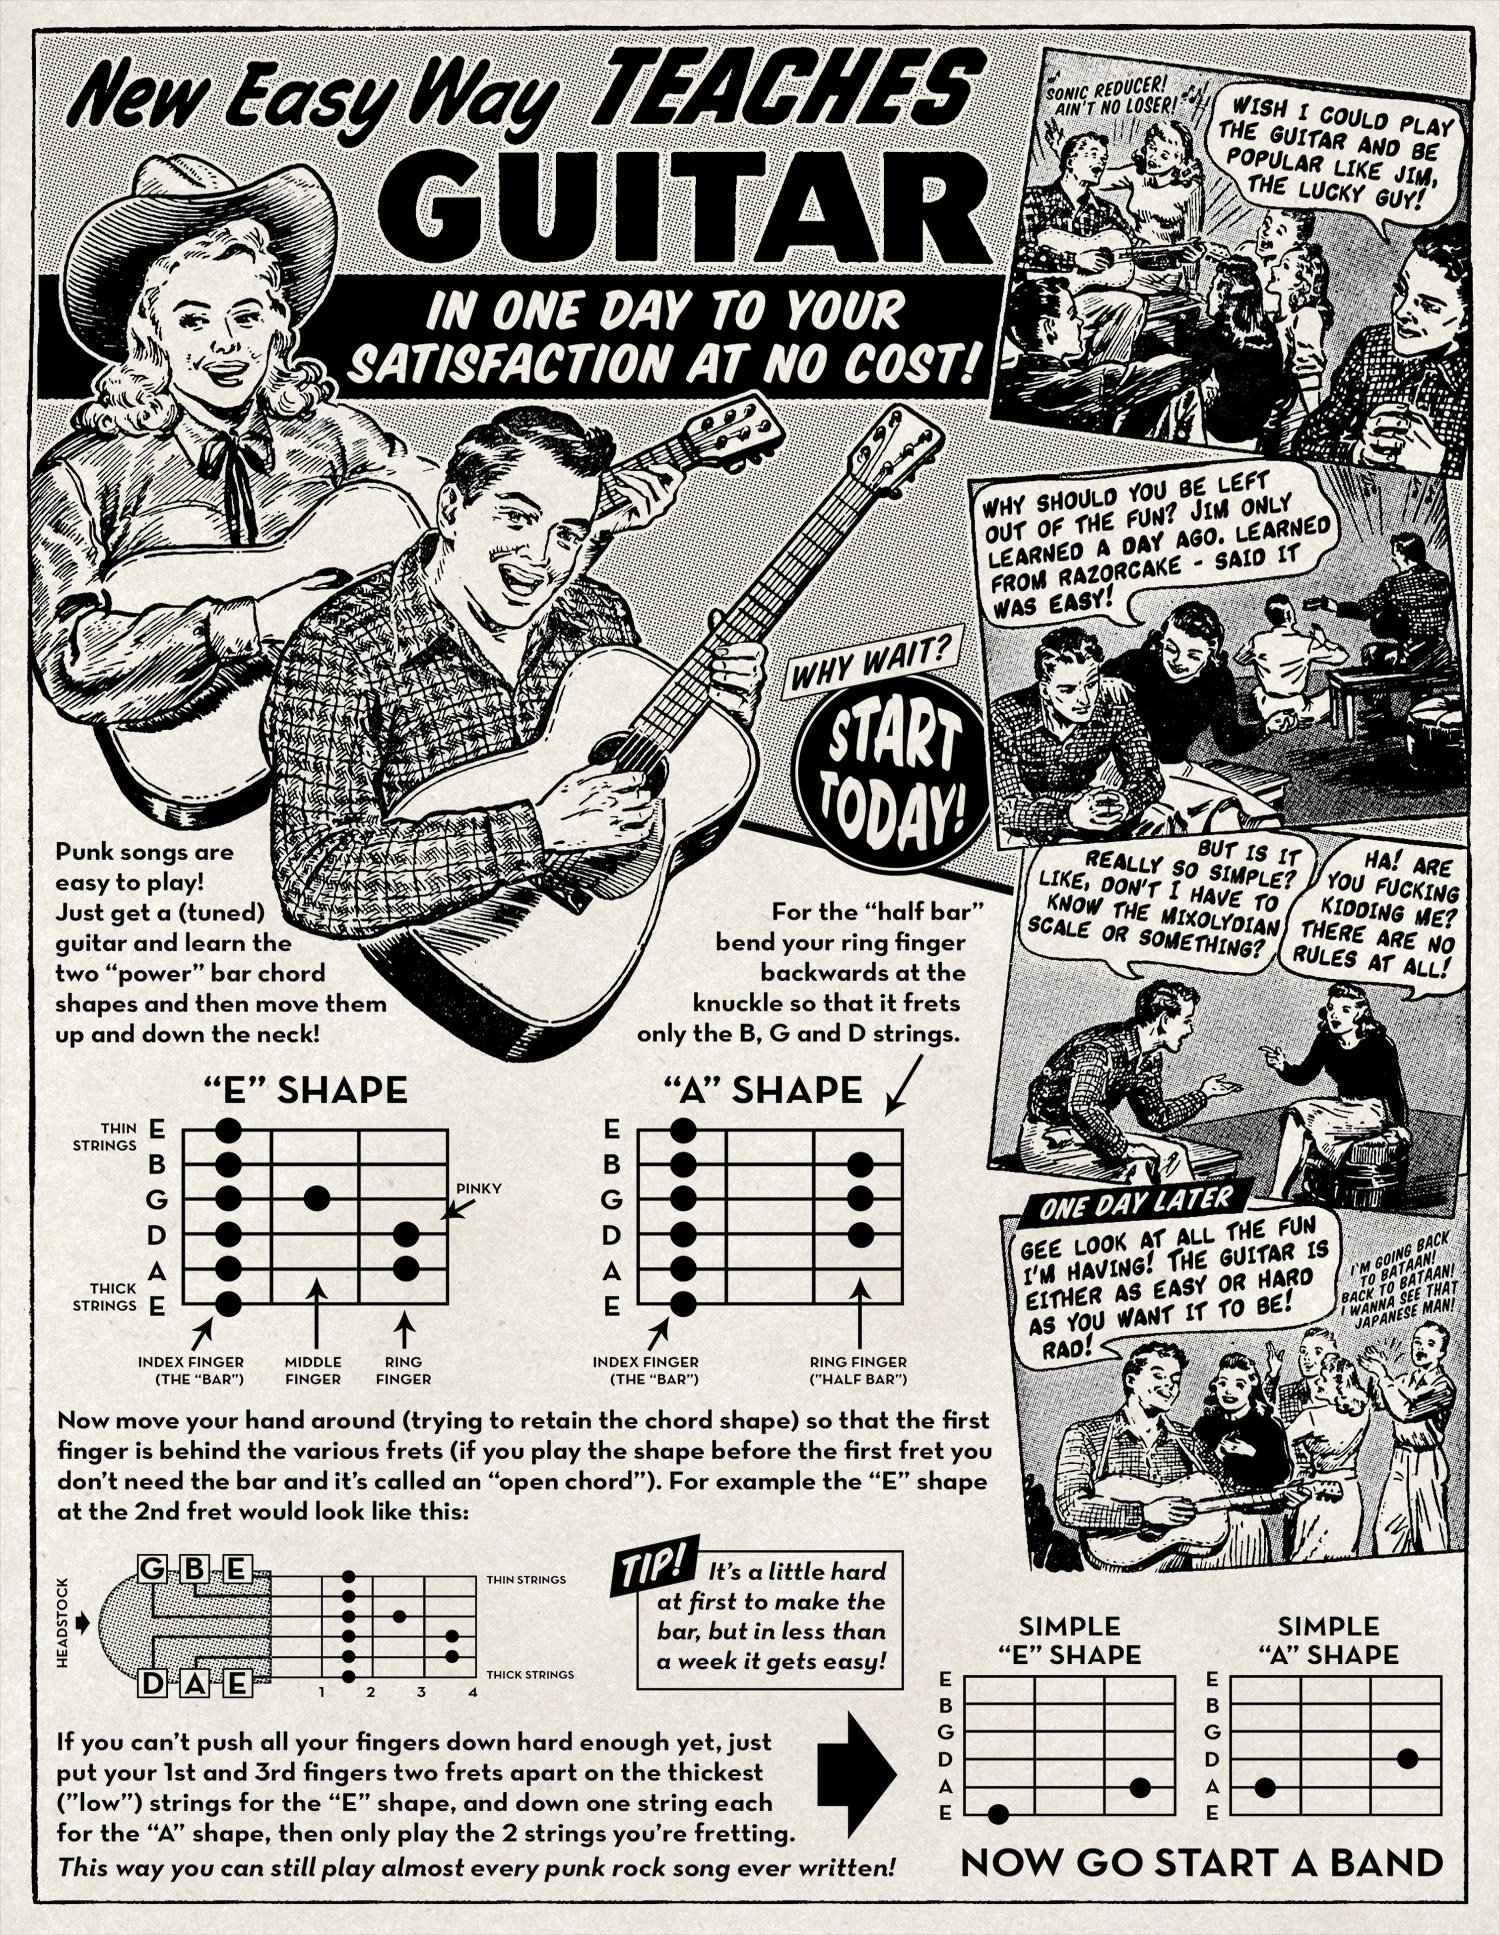 Razorcake - Learn to Play Guitar in One Day at No Cost - Graphic Design